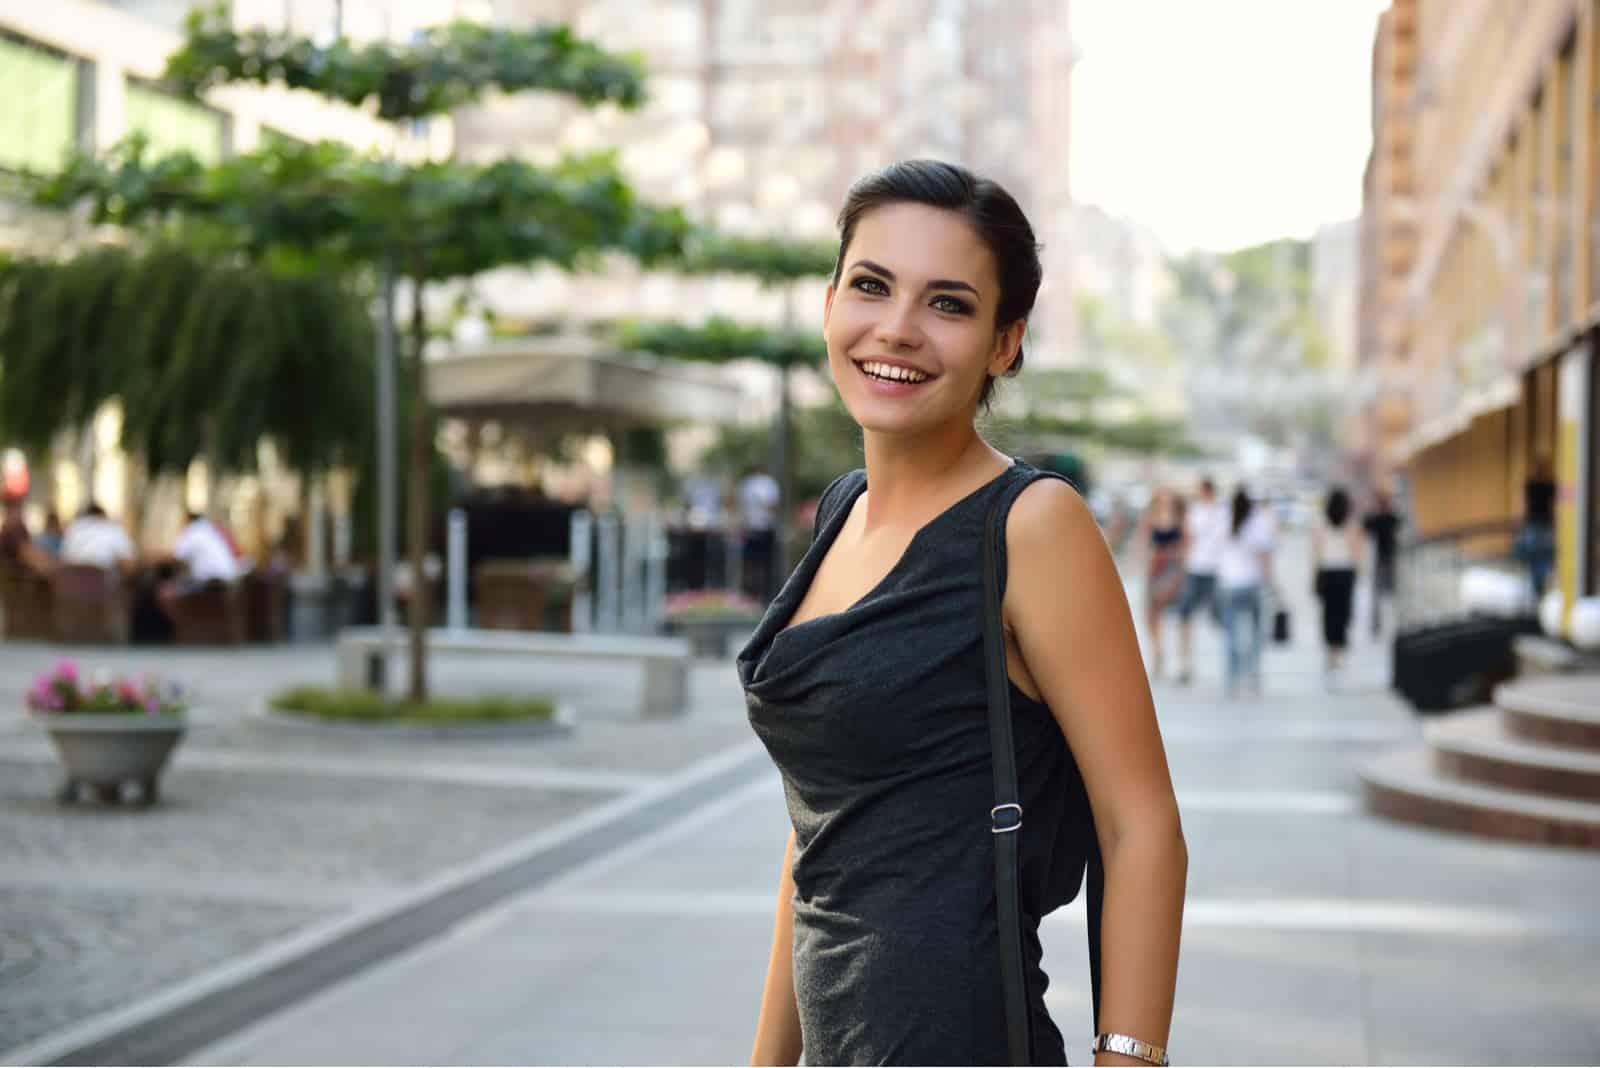 a smiling woman stands in the street